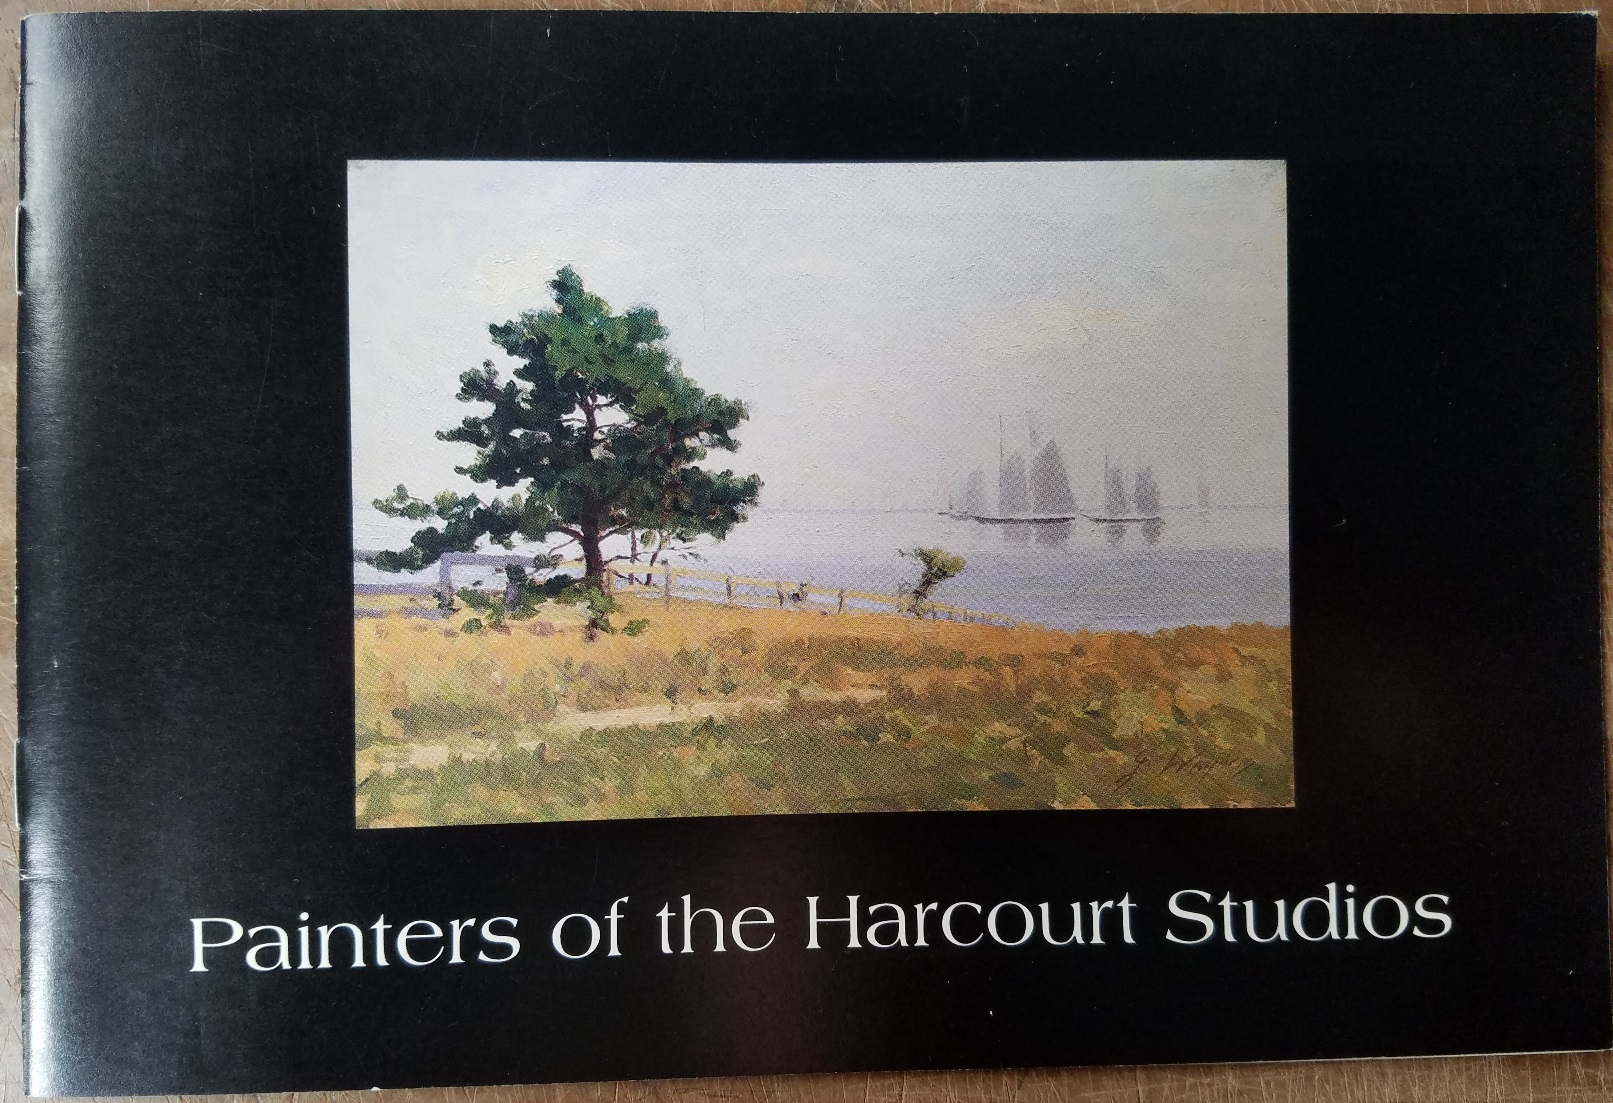 - Painters of the Harcourt Studios: Exhibition and Sale